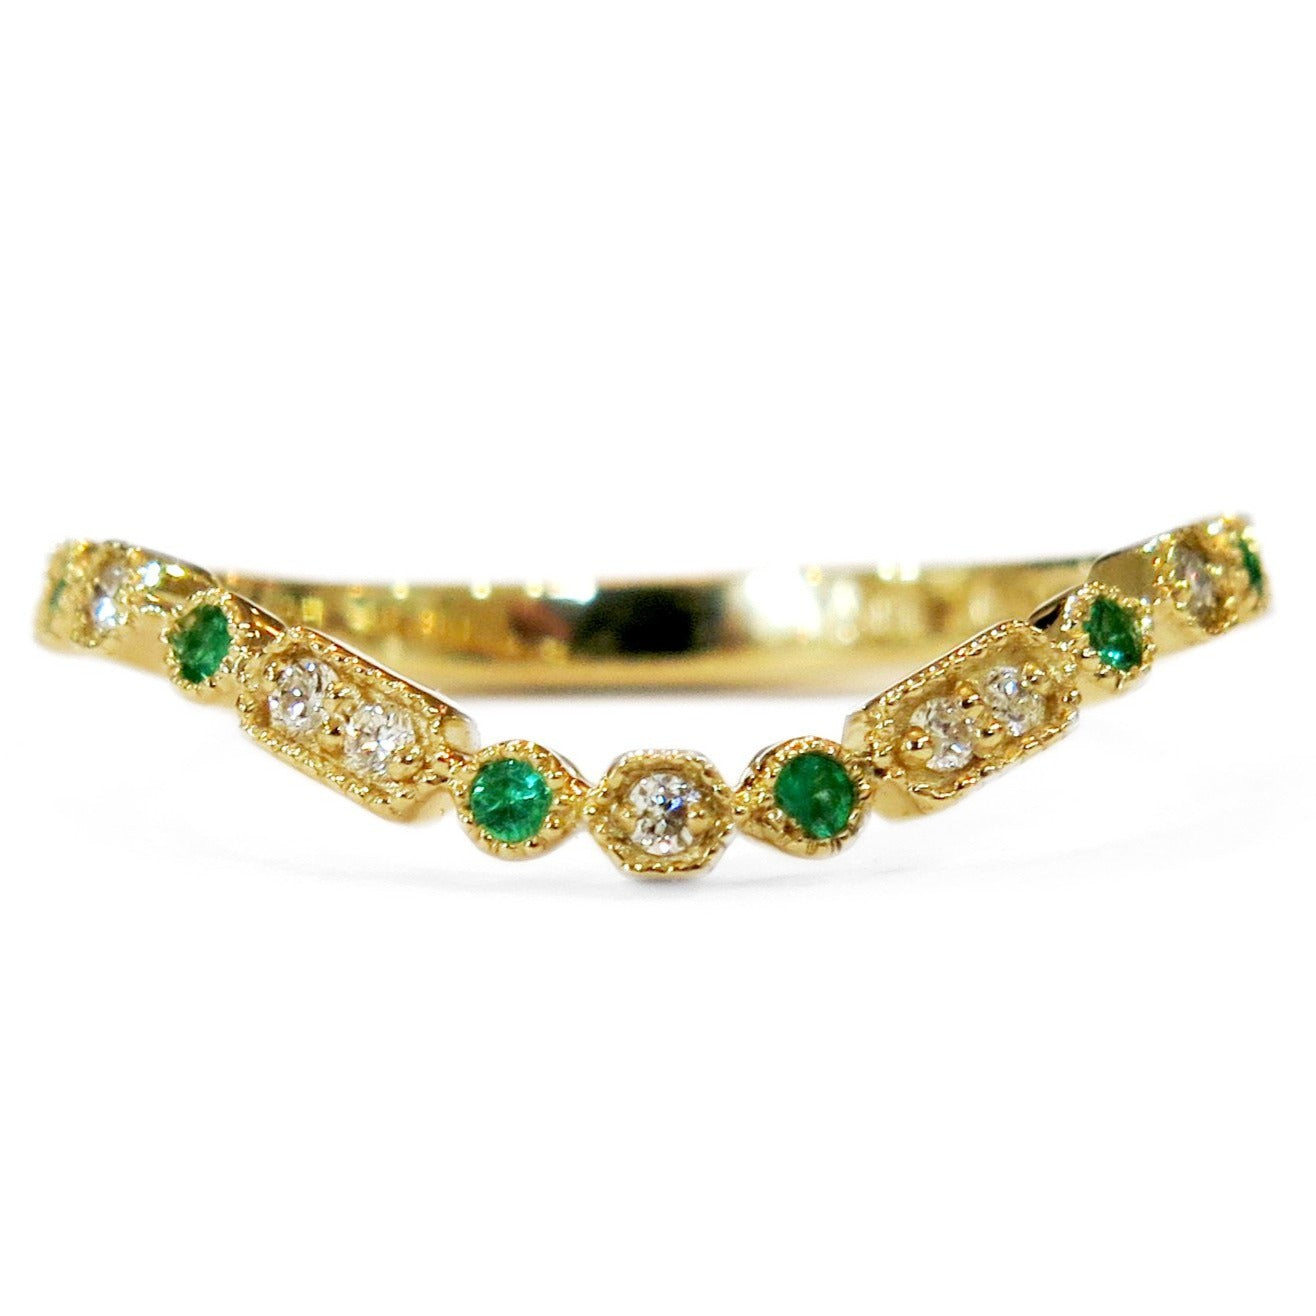 It is just an image of Abrielle Diamond & Emerald Curved Wedding Band in Yellow Gold